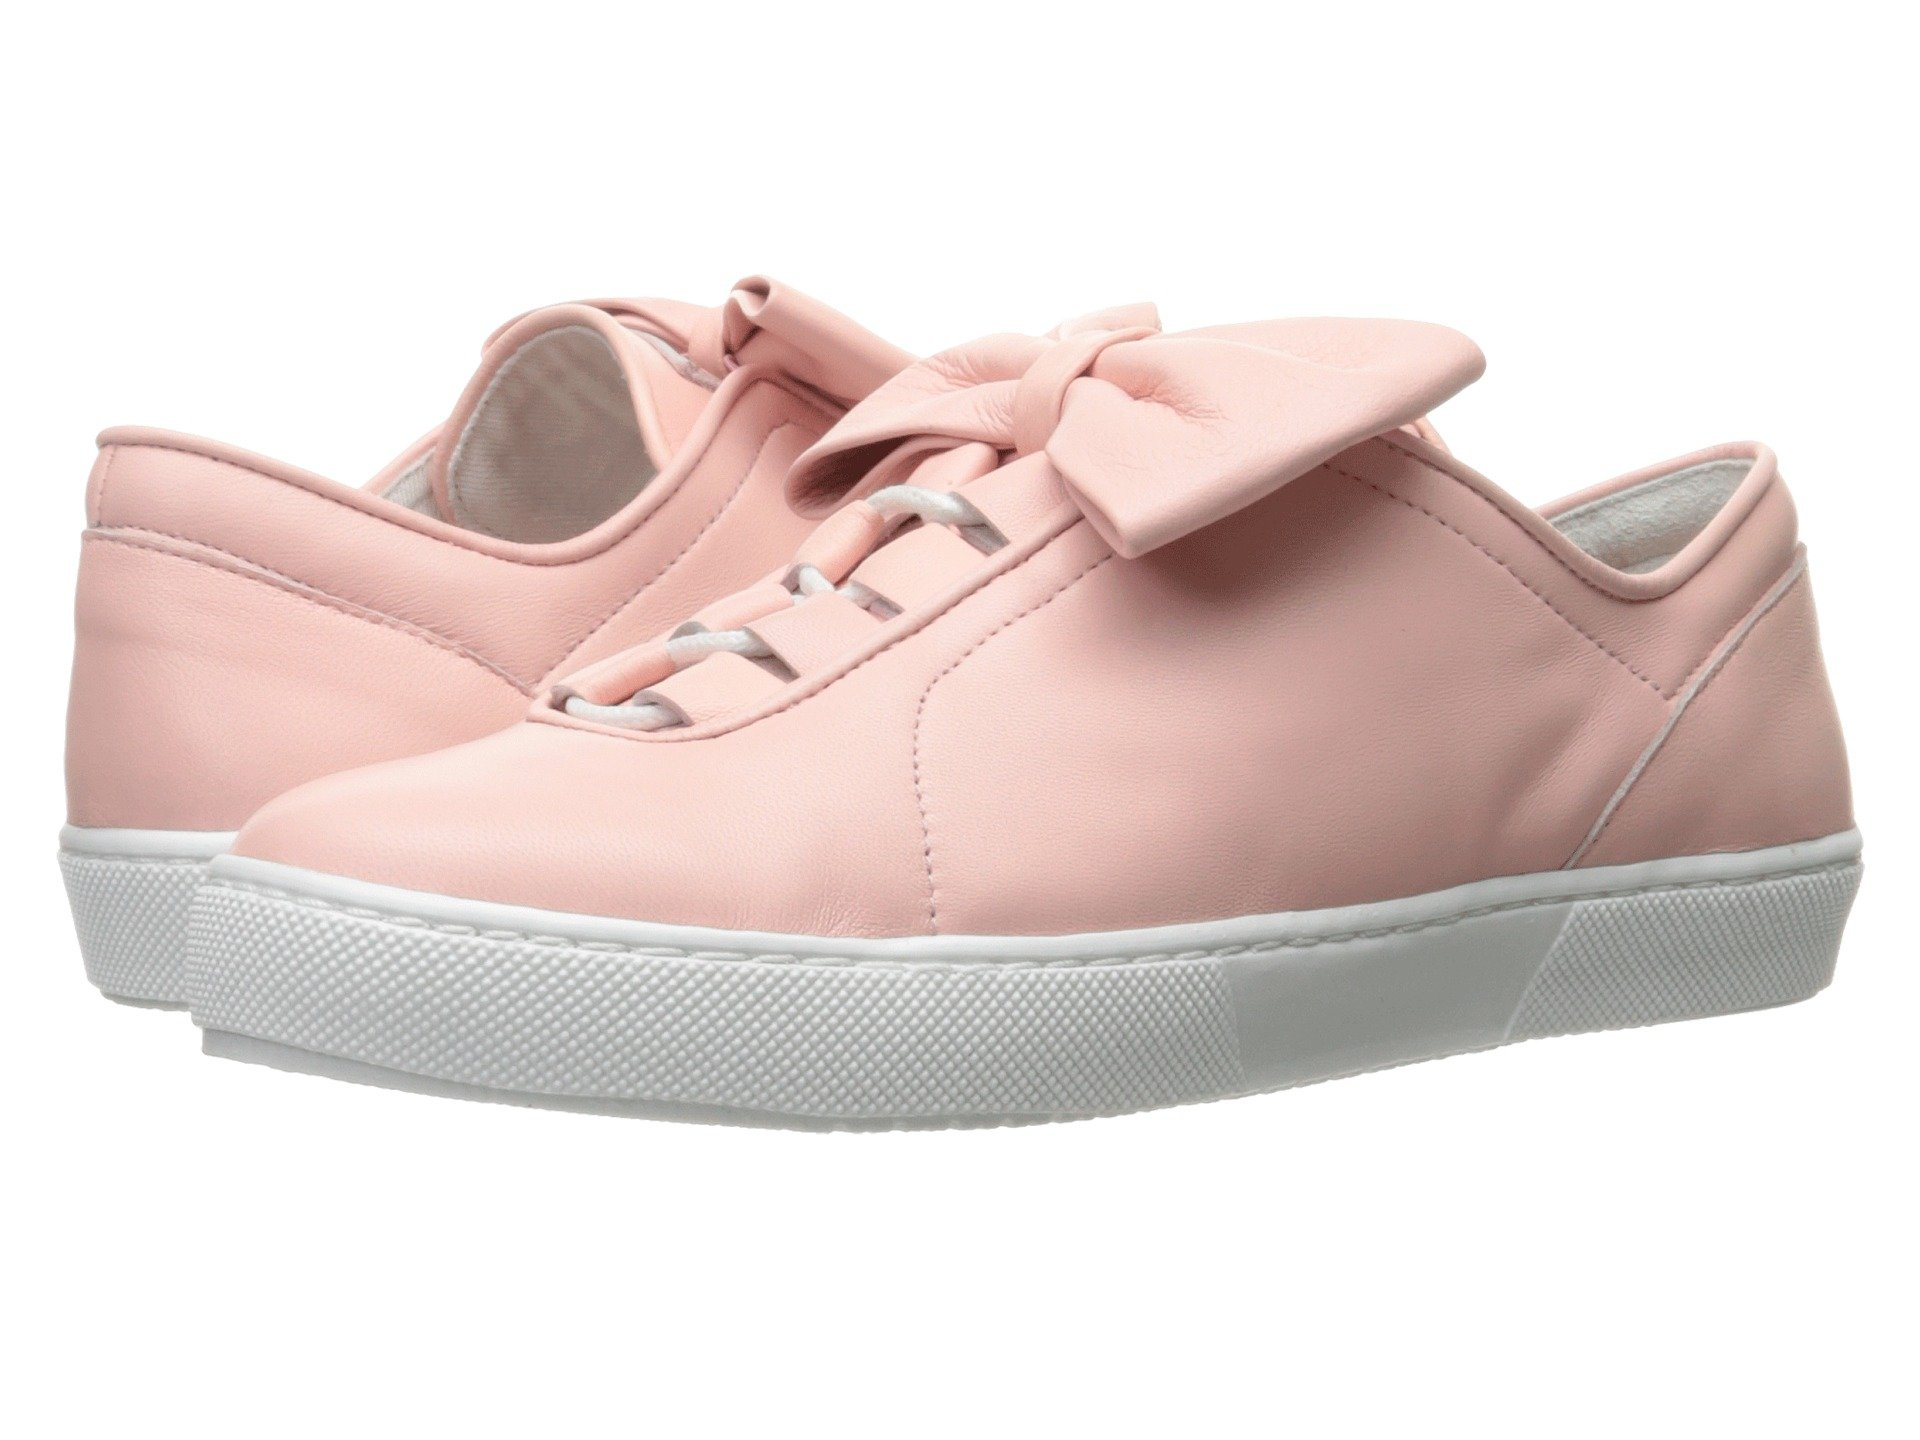 SNEAKER WITH BOW